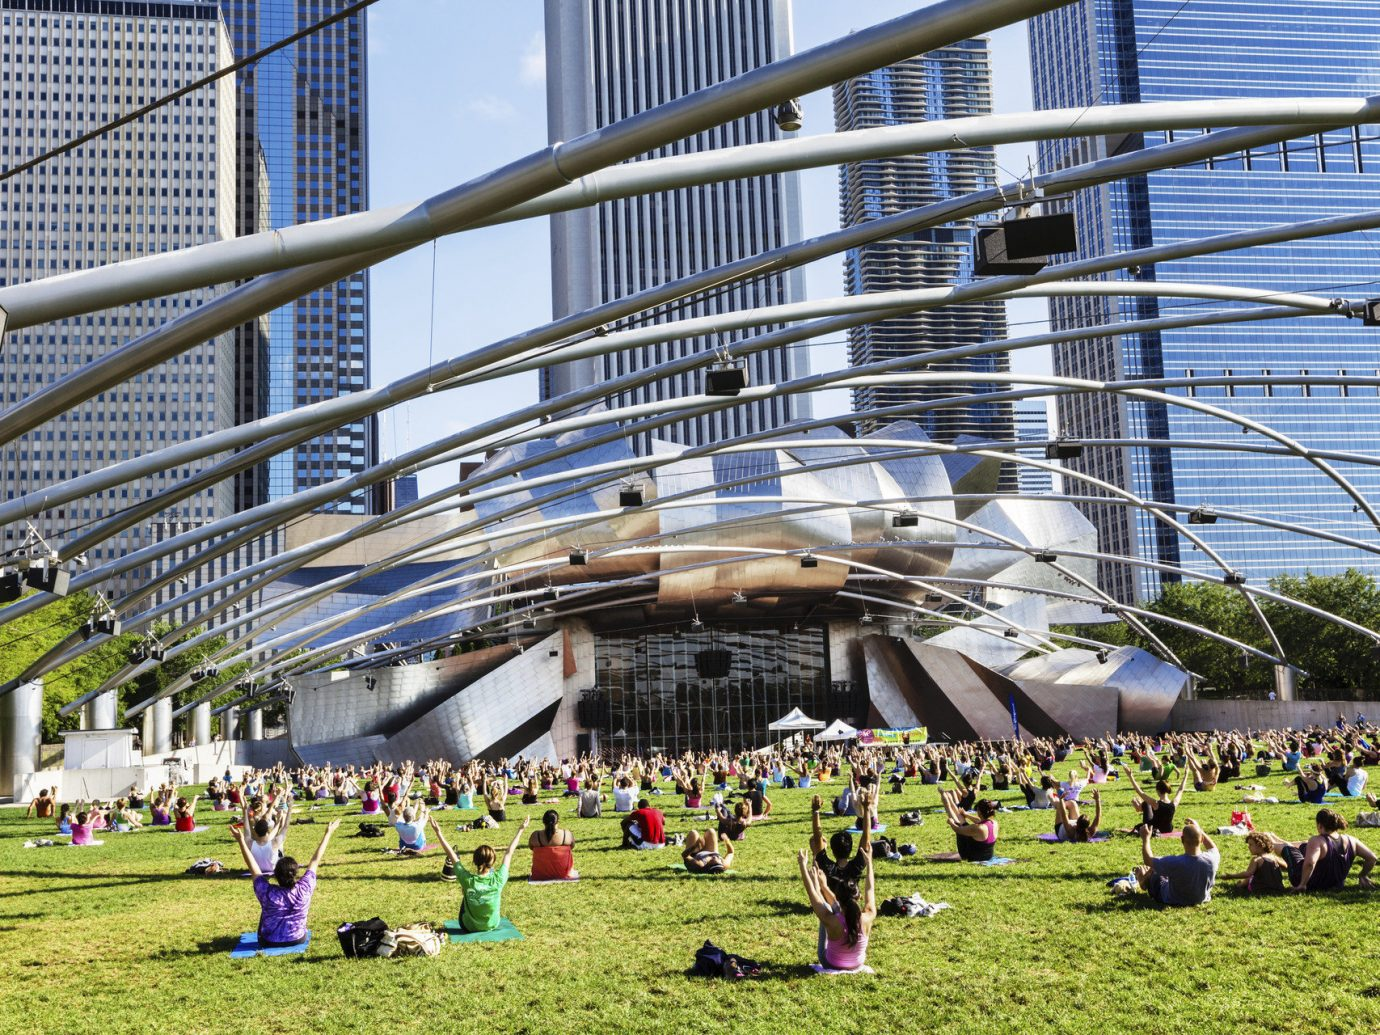 Jay Pritzker Pavilion Trip Ideas grass outdoor building City field neighbourhood residential area people stadium arena day